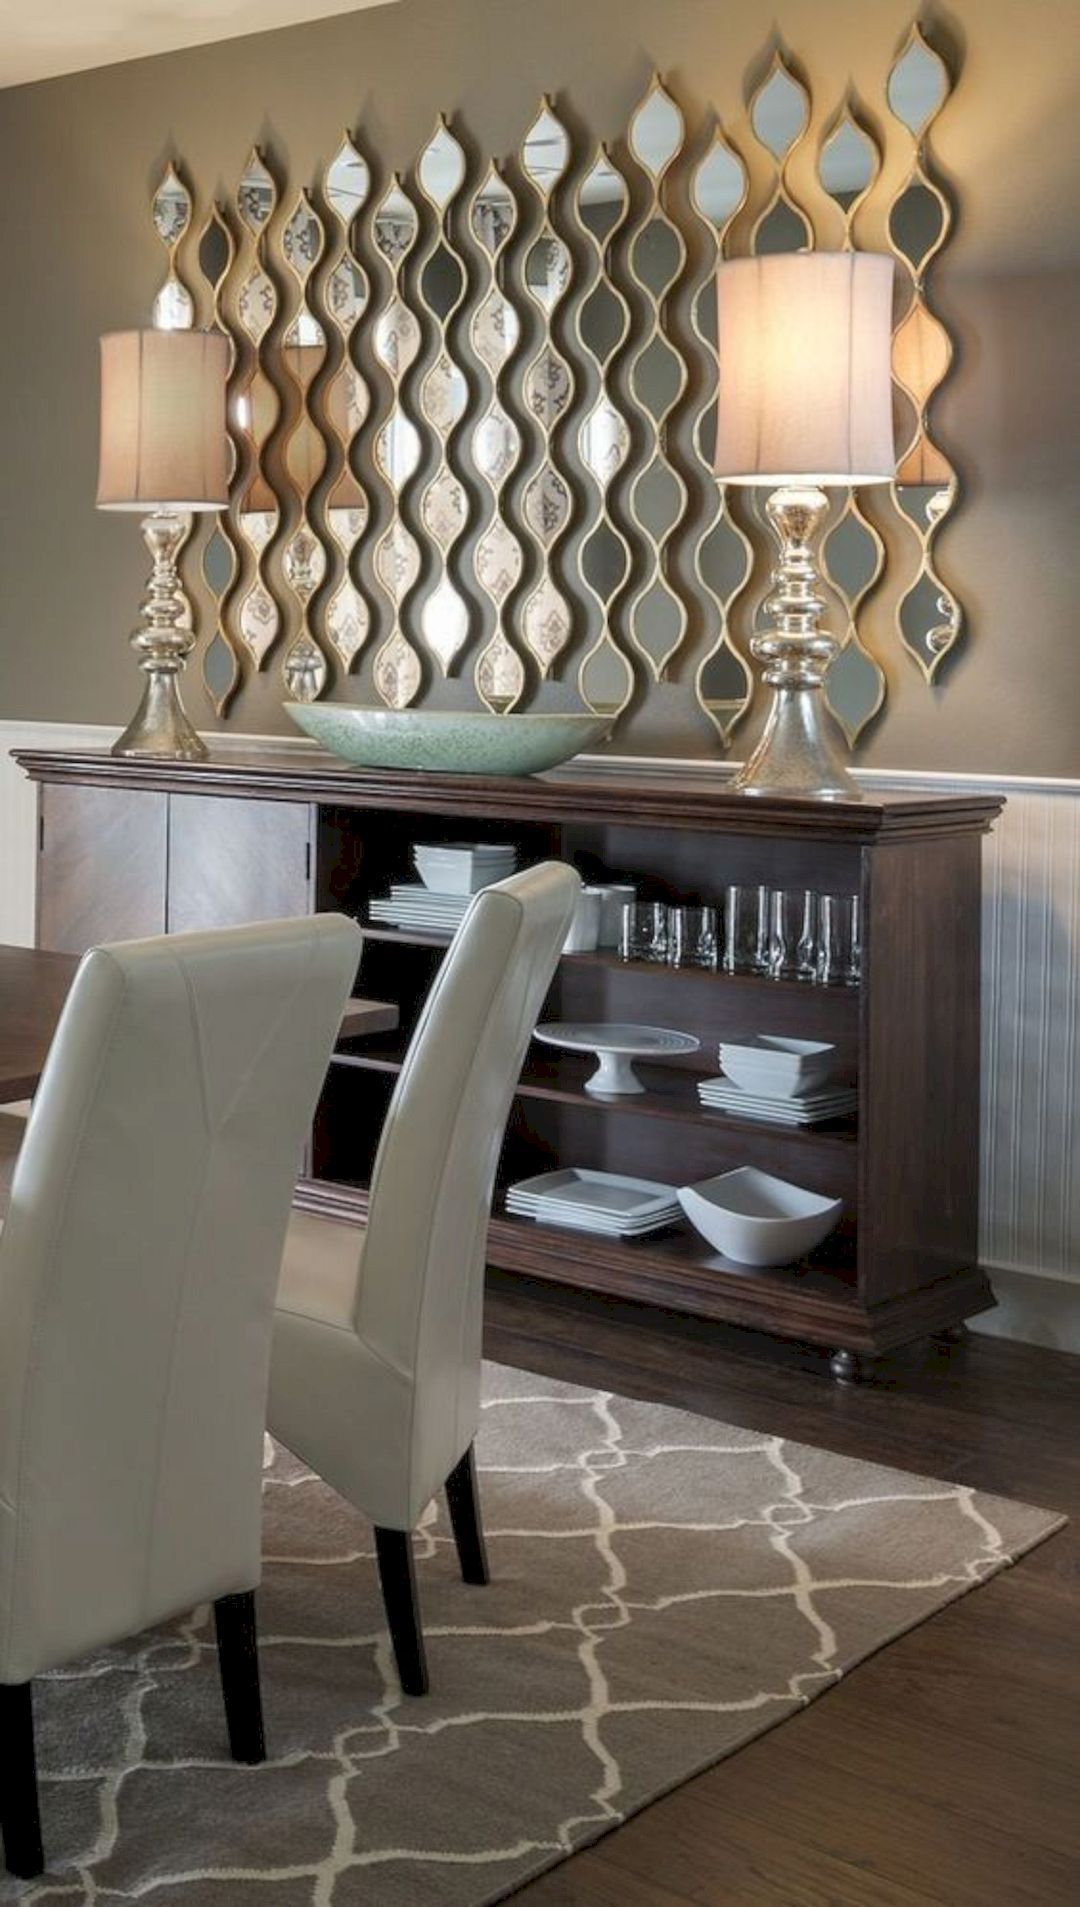 12 Dining Room Wall Decorating Ideas  Dining room wall decor